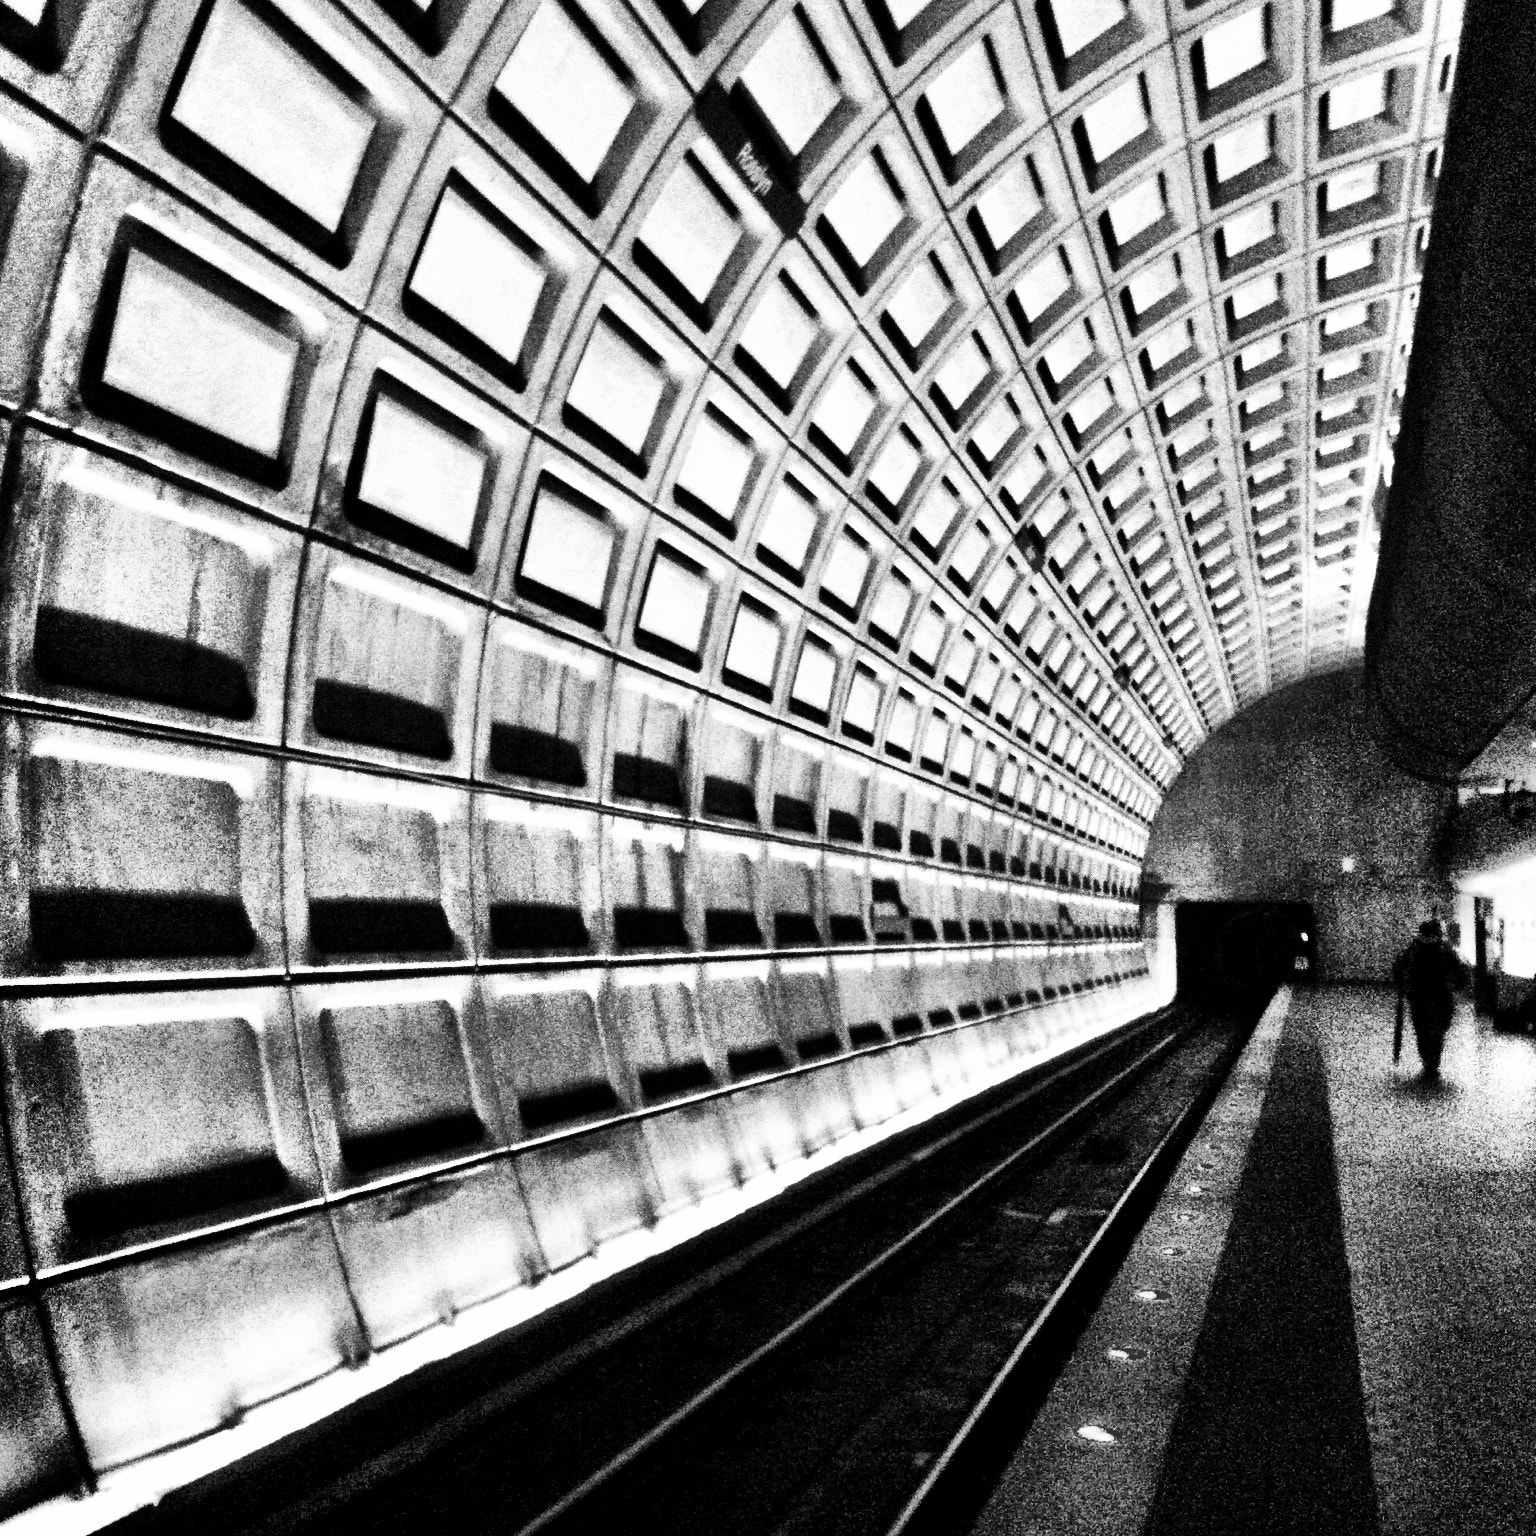 Photograph Transport Tube by M Dean Jones on 500px